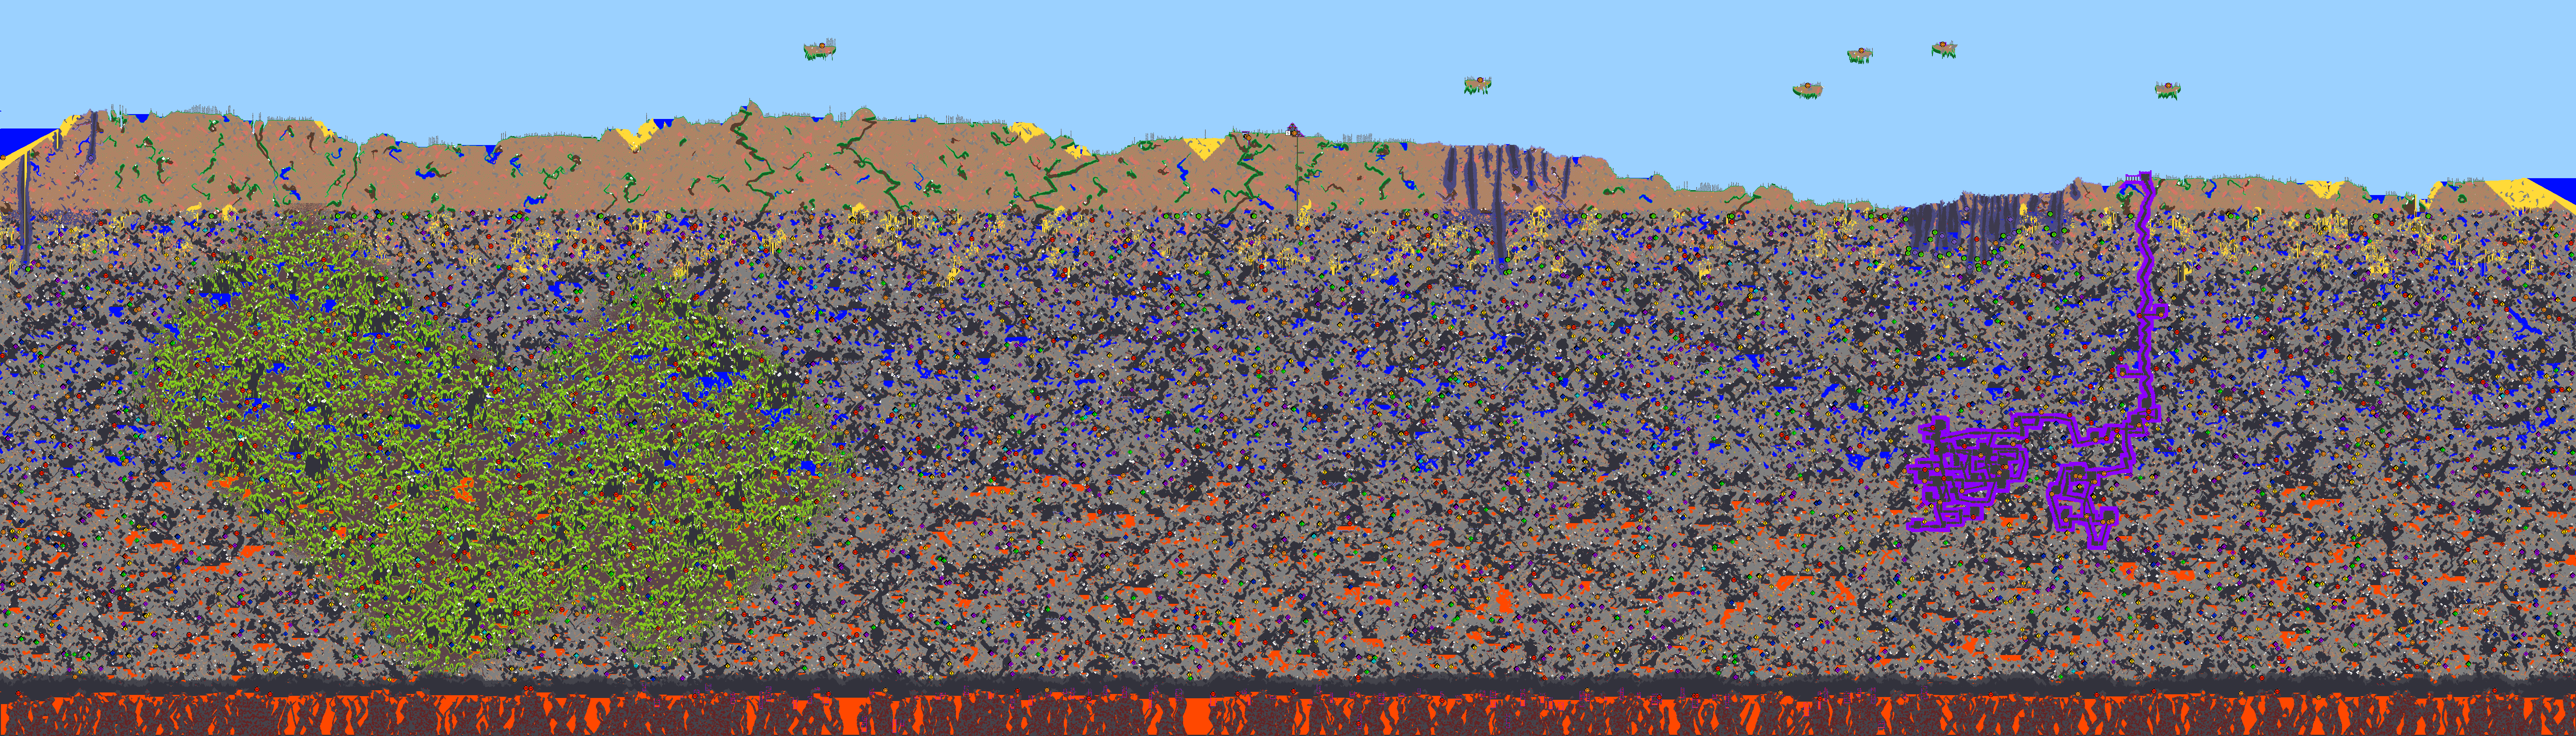 2D Tile World Generation - General and Gameplay Programming